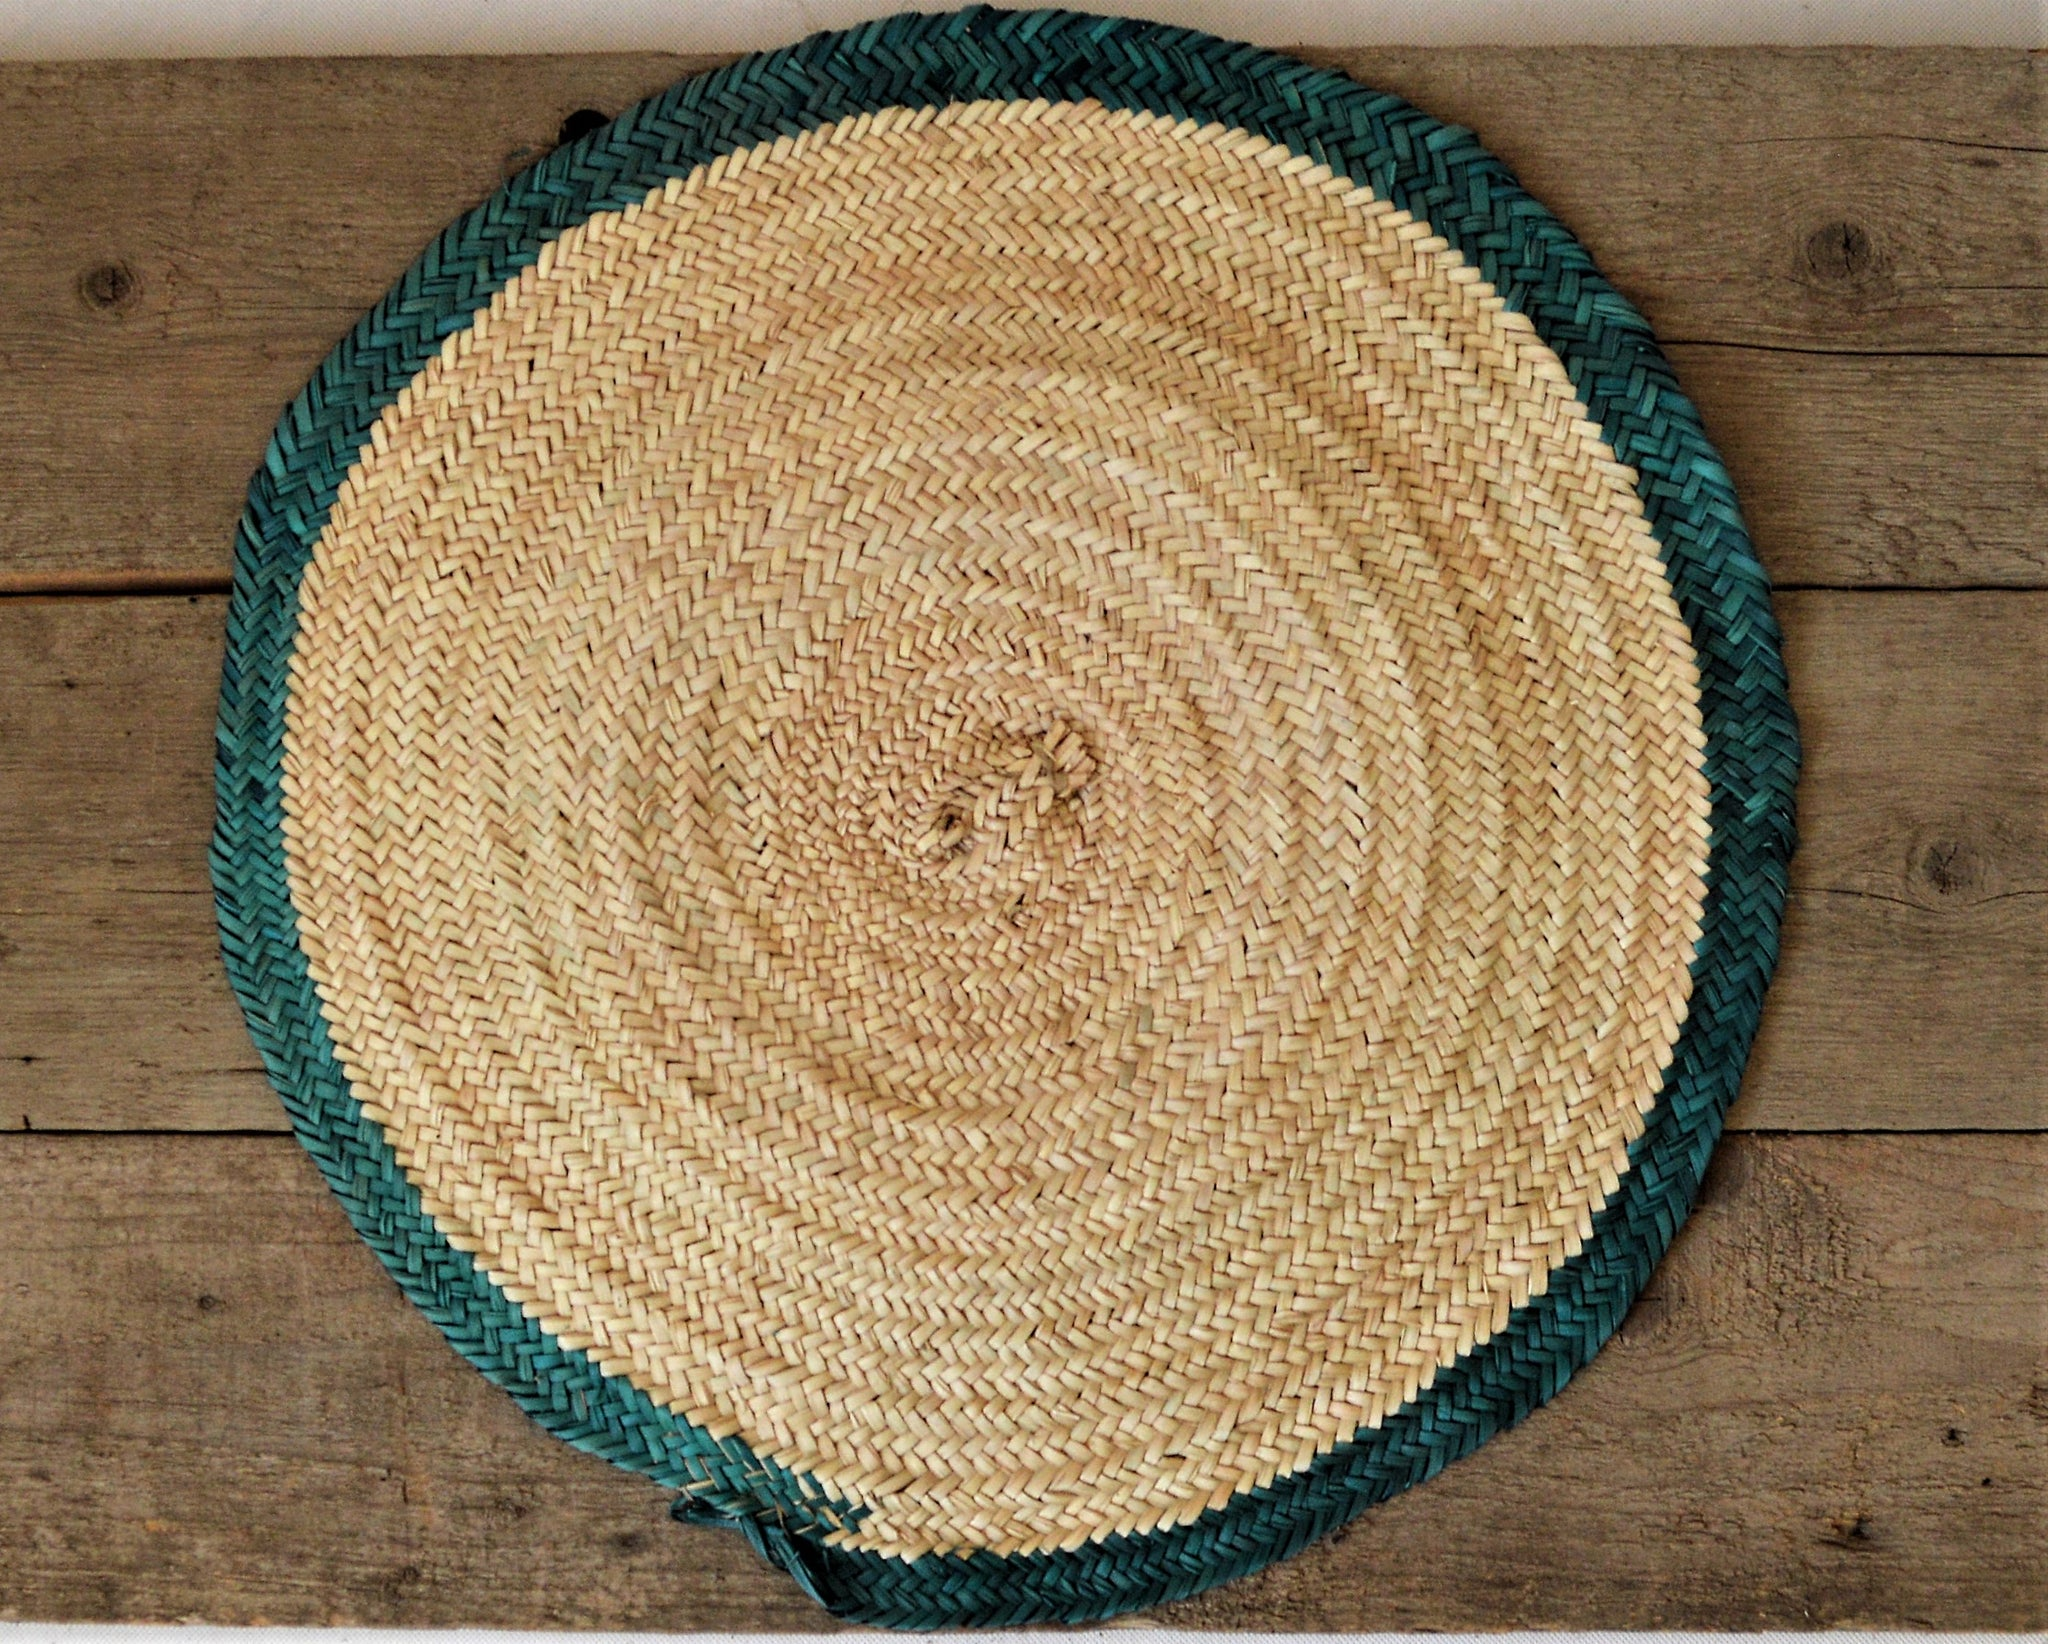 Large round straw mat for kitchen table top natural palm leaves